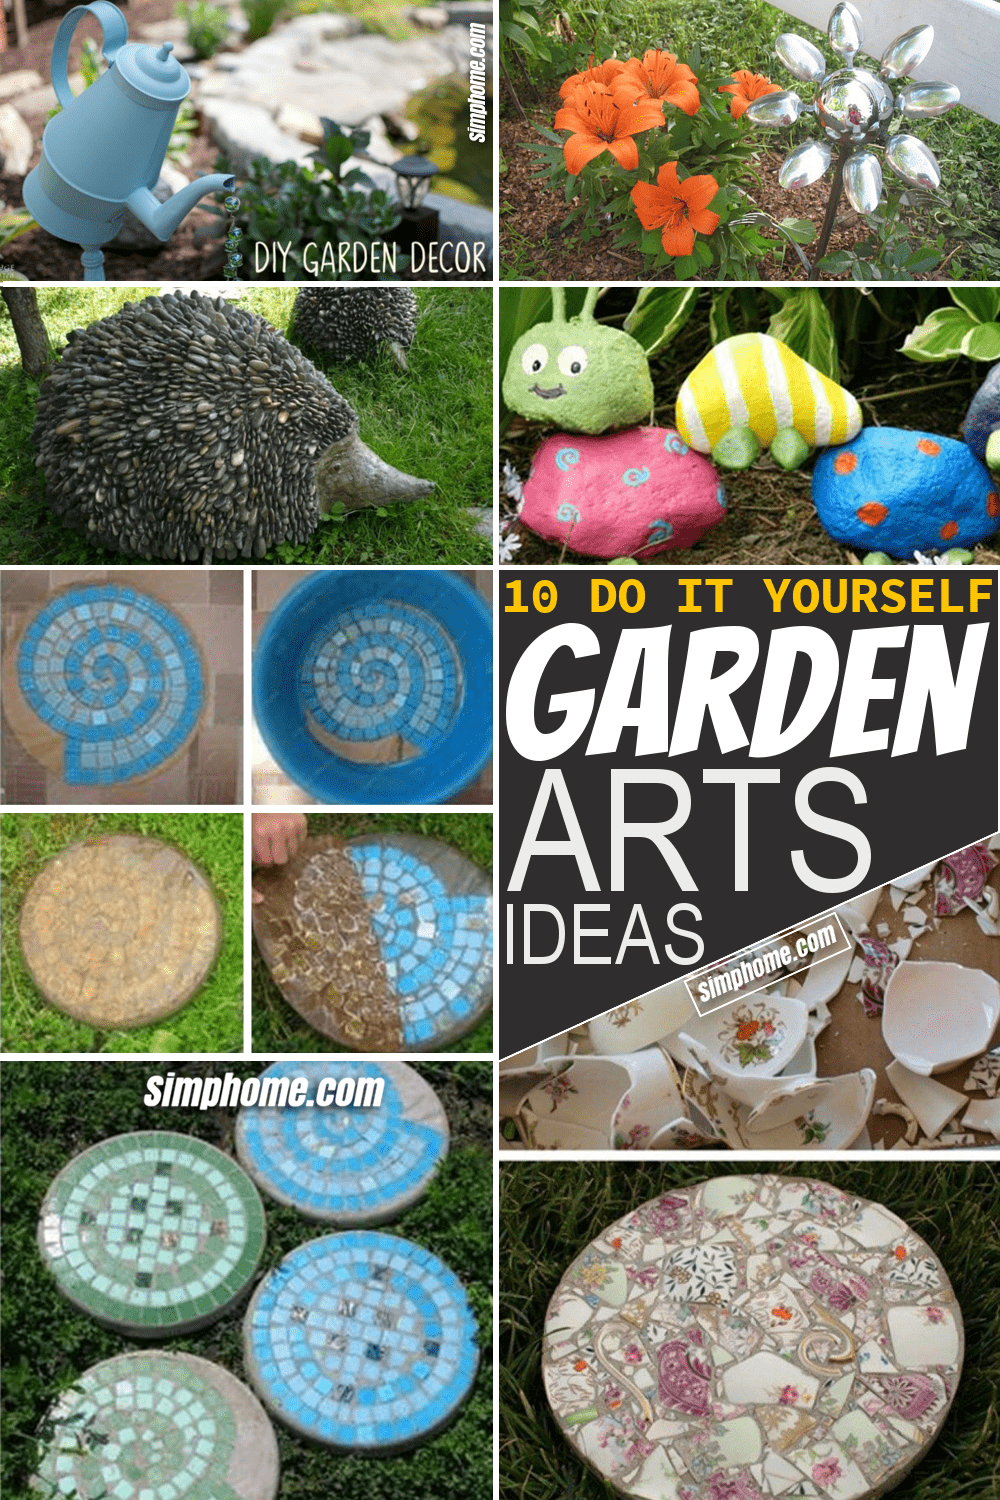 Simphome.com 10 DIY Garden Art Ideas Featured Pinterest Image